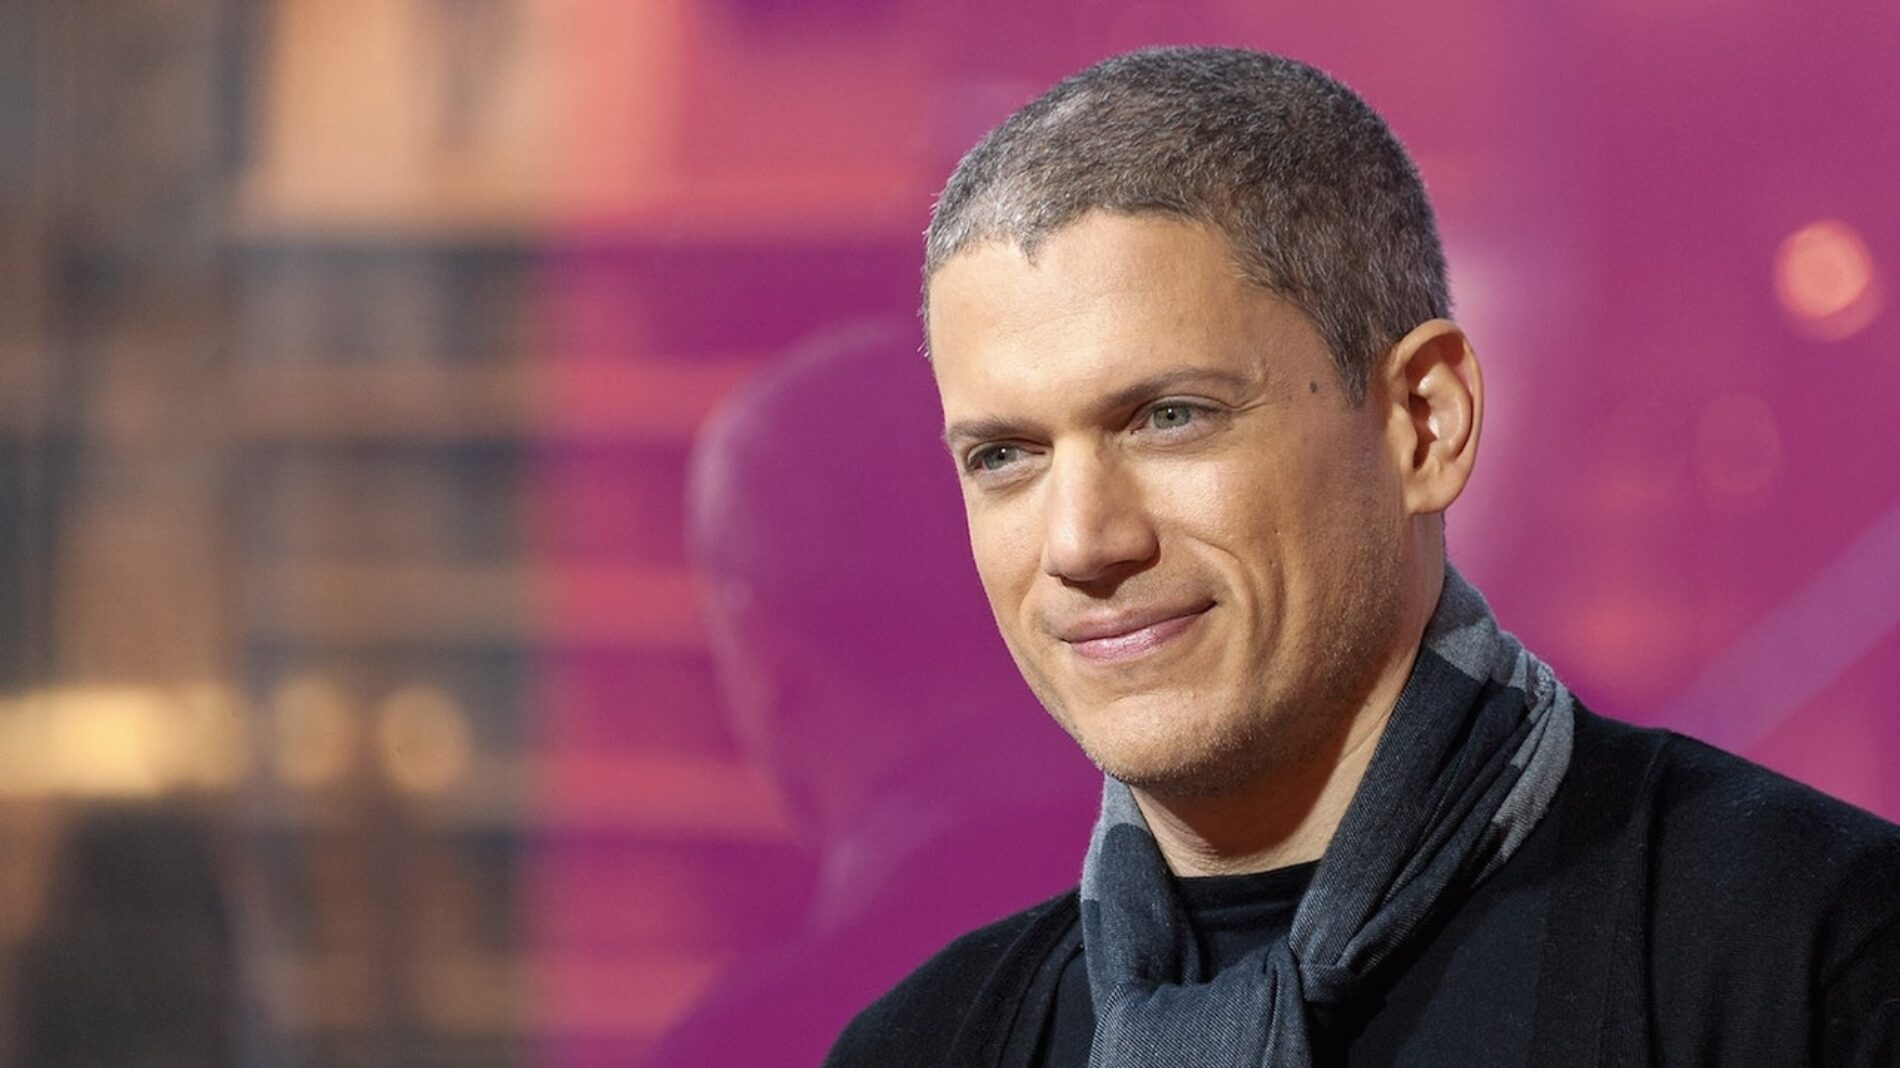 Wentworth Miller says he's done with 'Prison Break' and playing straight roles